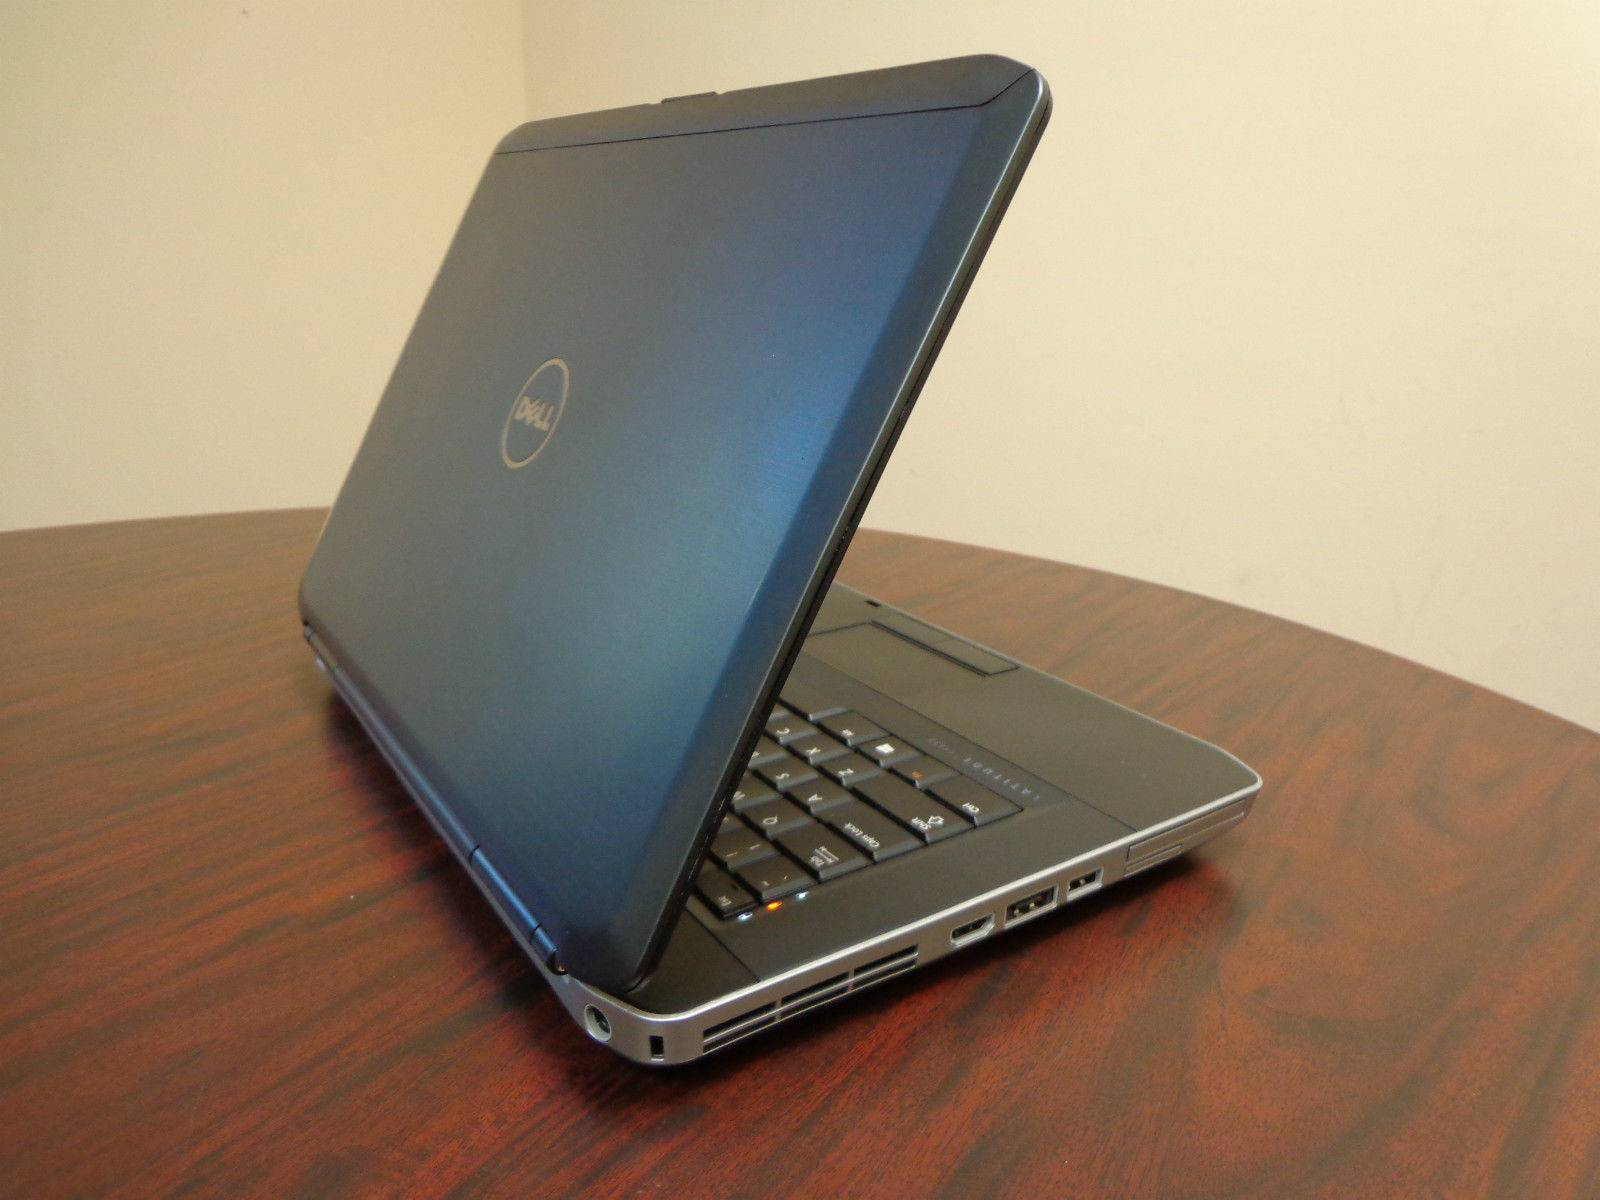 Dell Latitude E5430 Intel Core i5 2.60GHz 4GB 320GB Hard Bluetoot Win7 Laptop